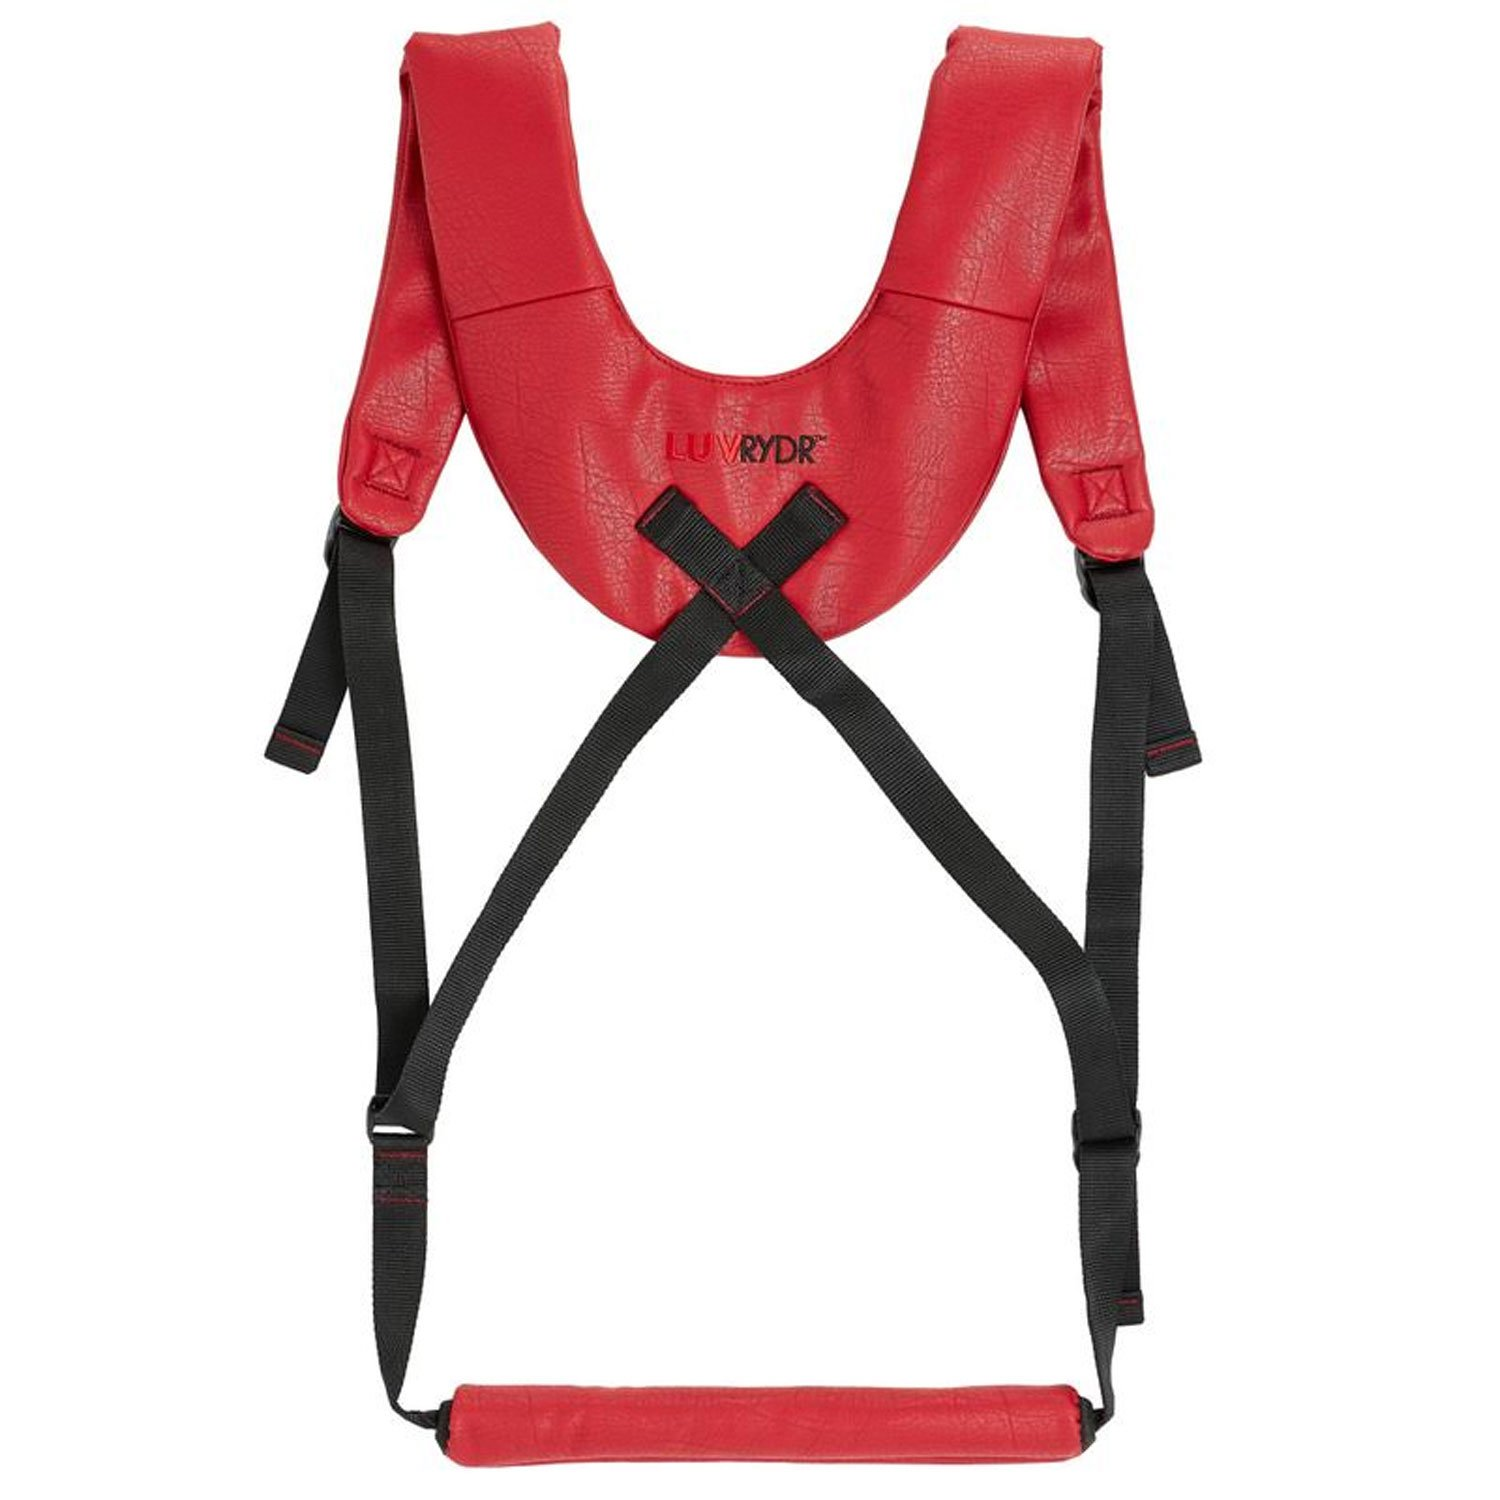 Restraint Doggy Style Strap Harness for Couples Sex Play by LUV Rydr (Red) by LUV Rydr